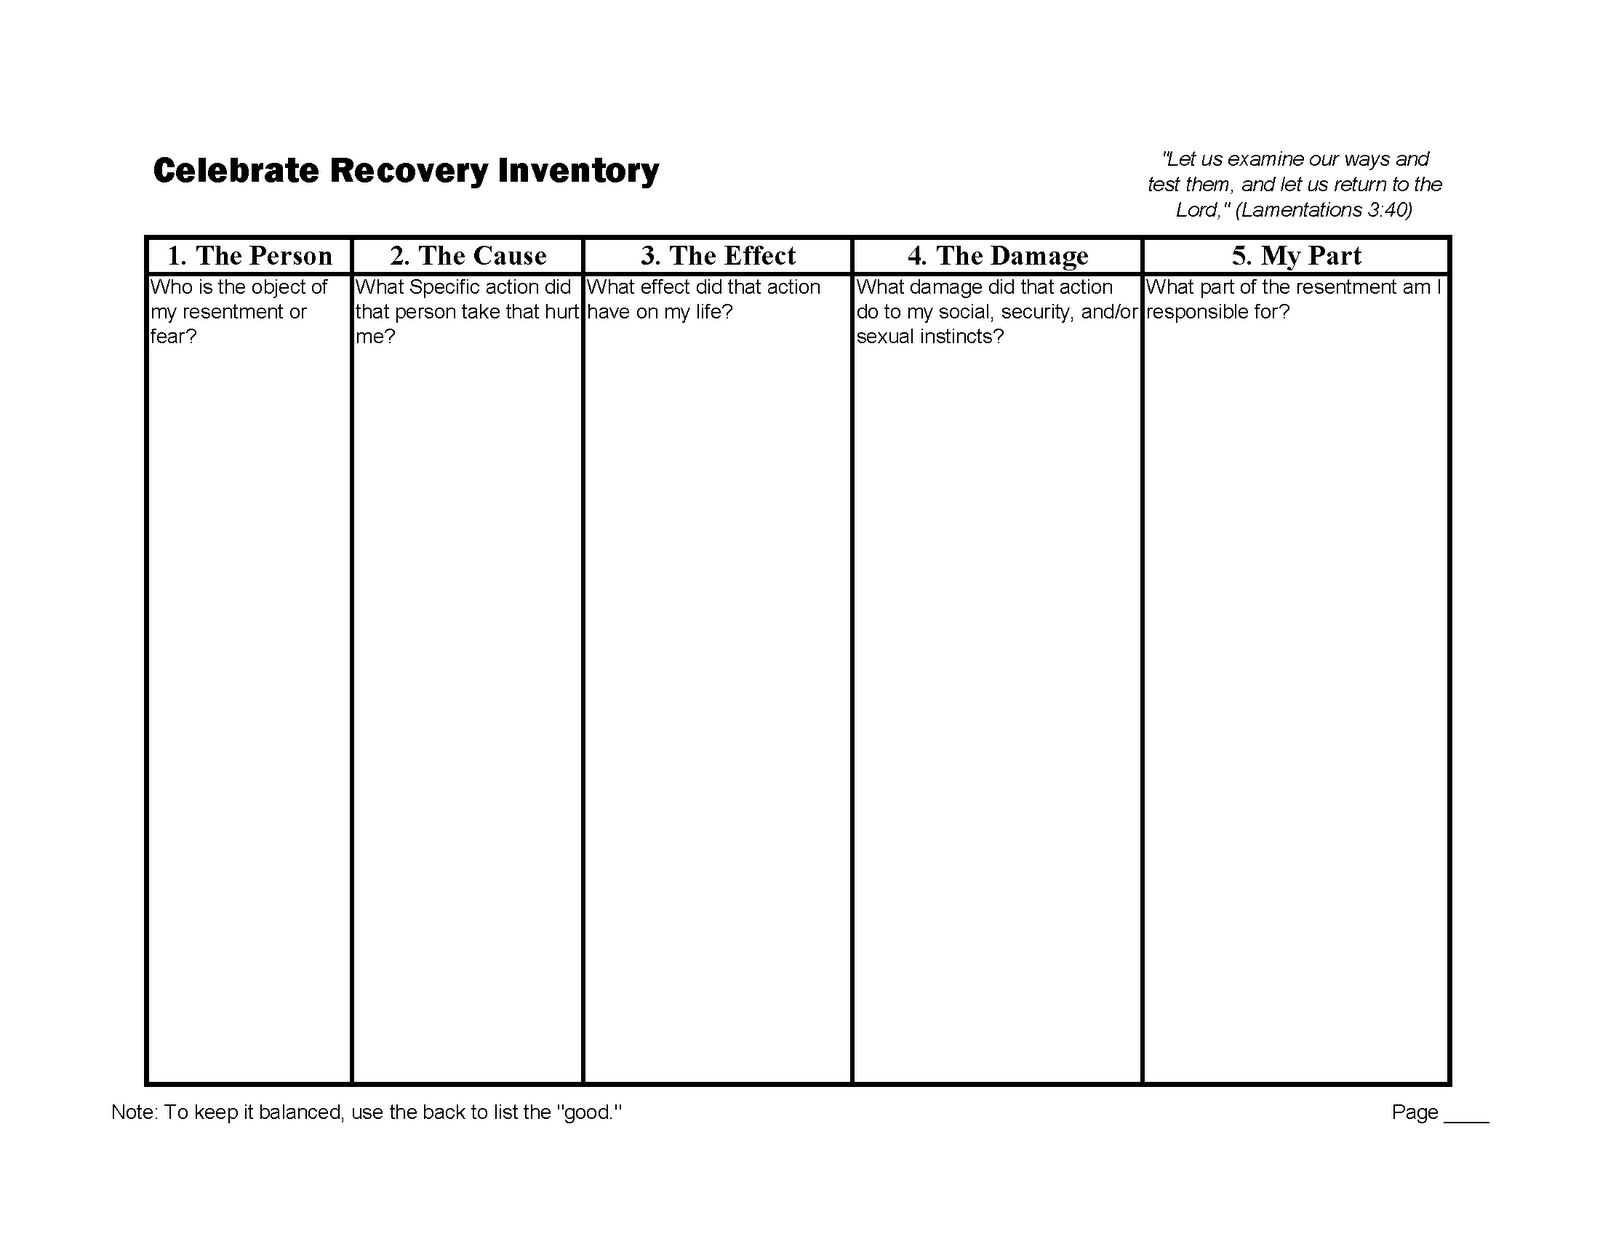 Worksheets Celebrate Recovery Inventory Worksheet